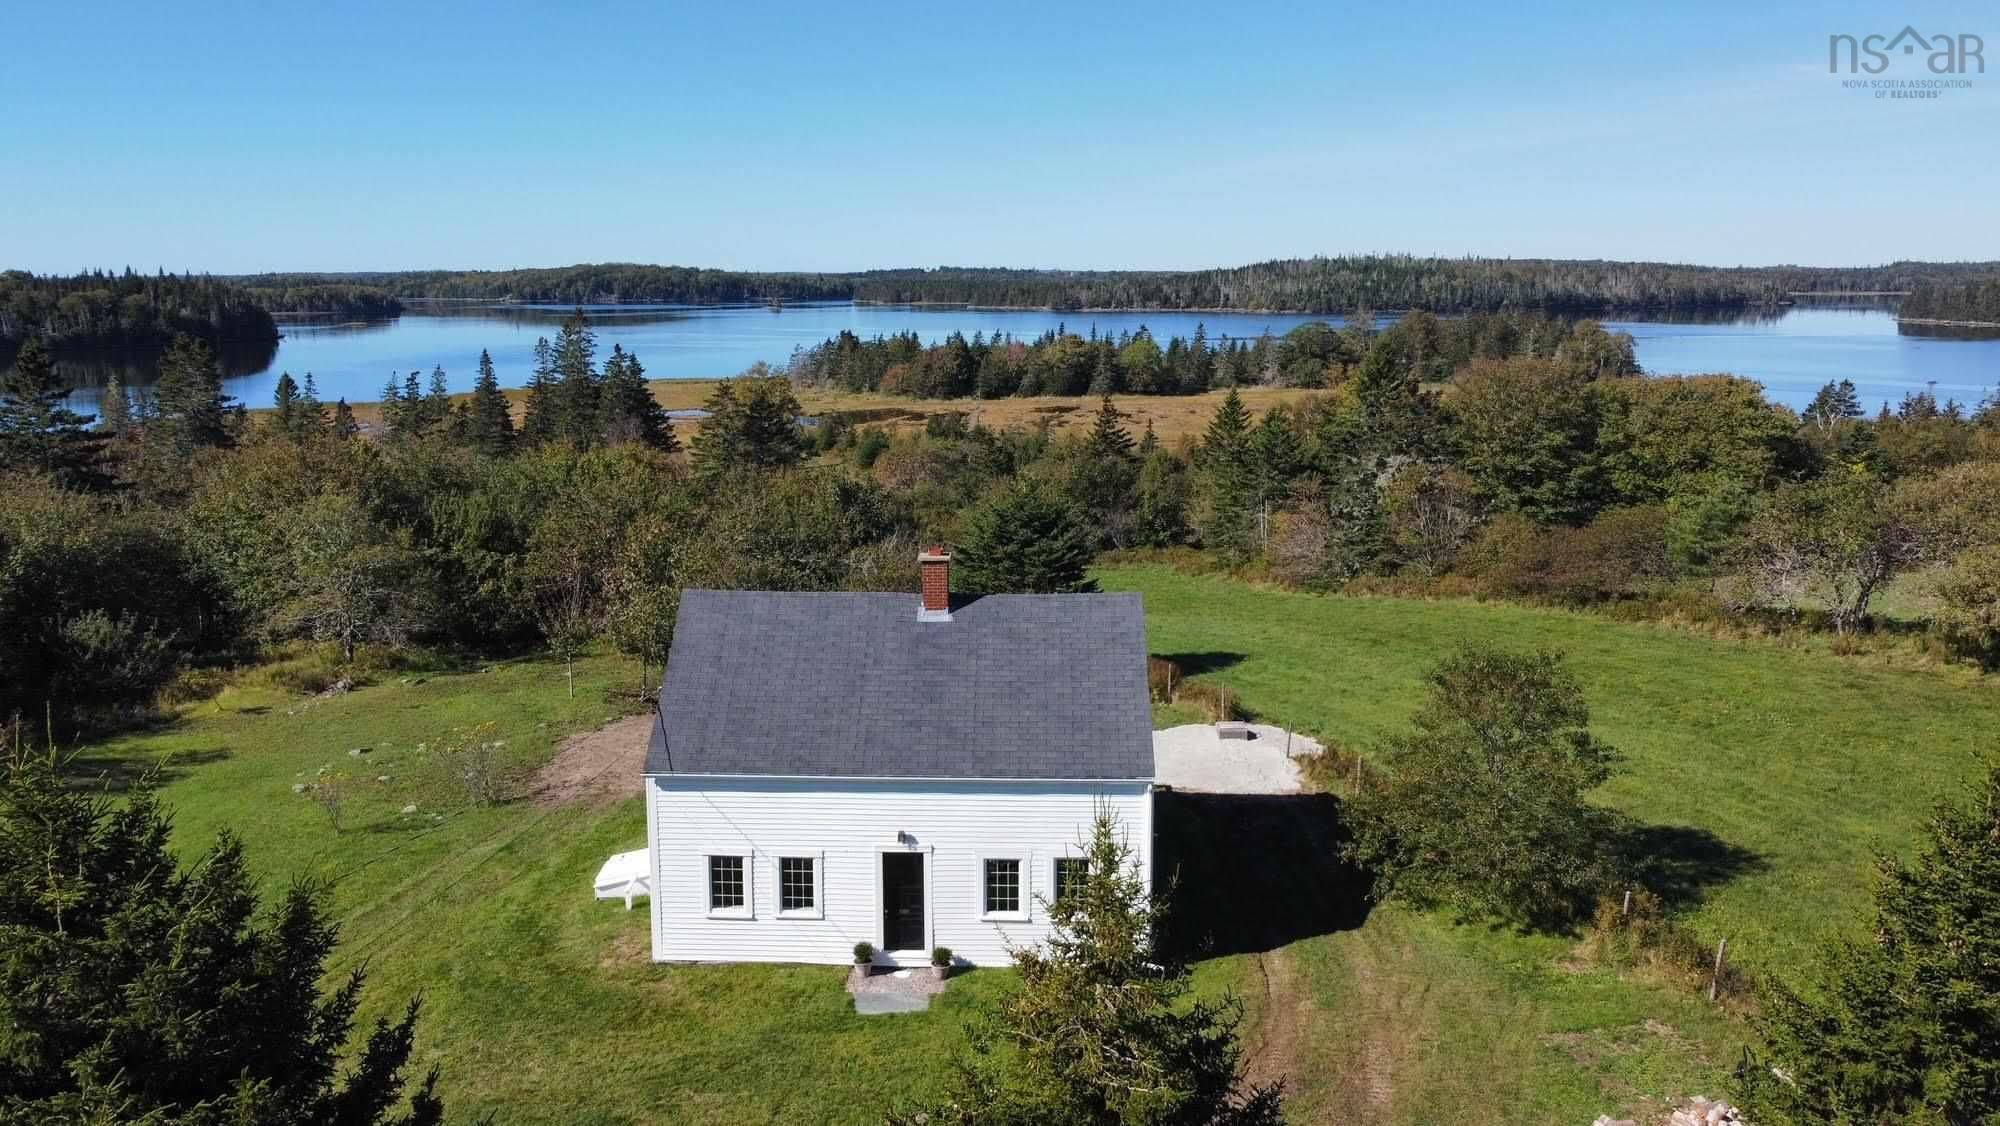 Main Photo: 4815 HIGHWAY 3 in Central Argyle: County Hwy 3 Residential for sale (Yarmouth)  : MLS®# 202125185